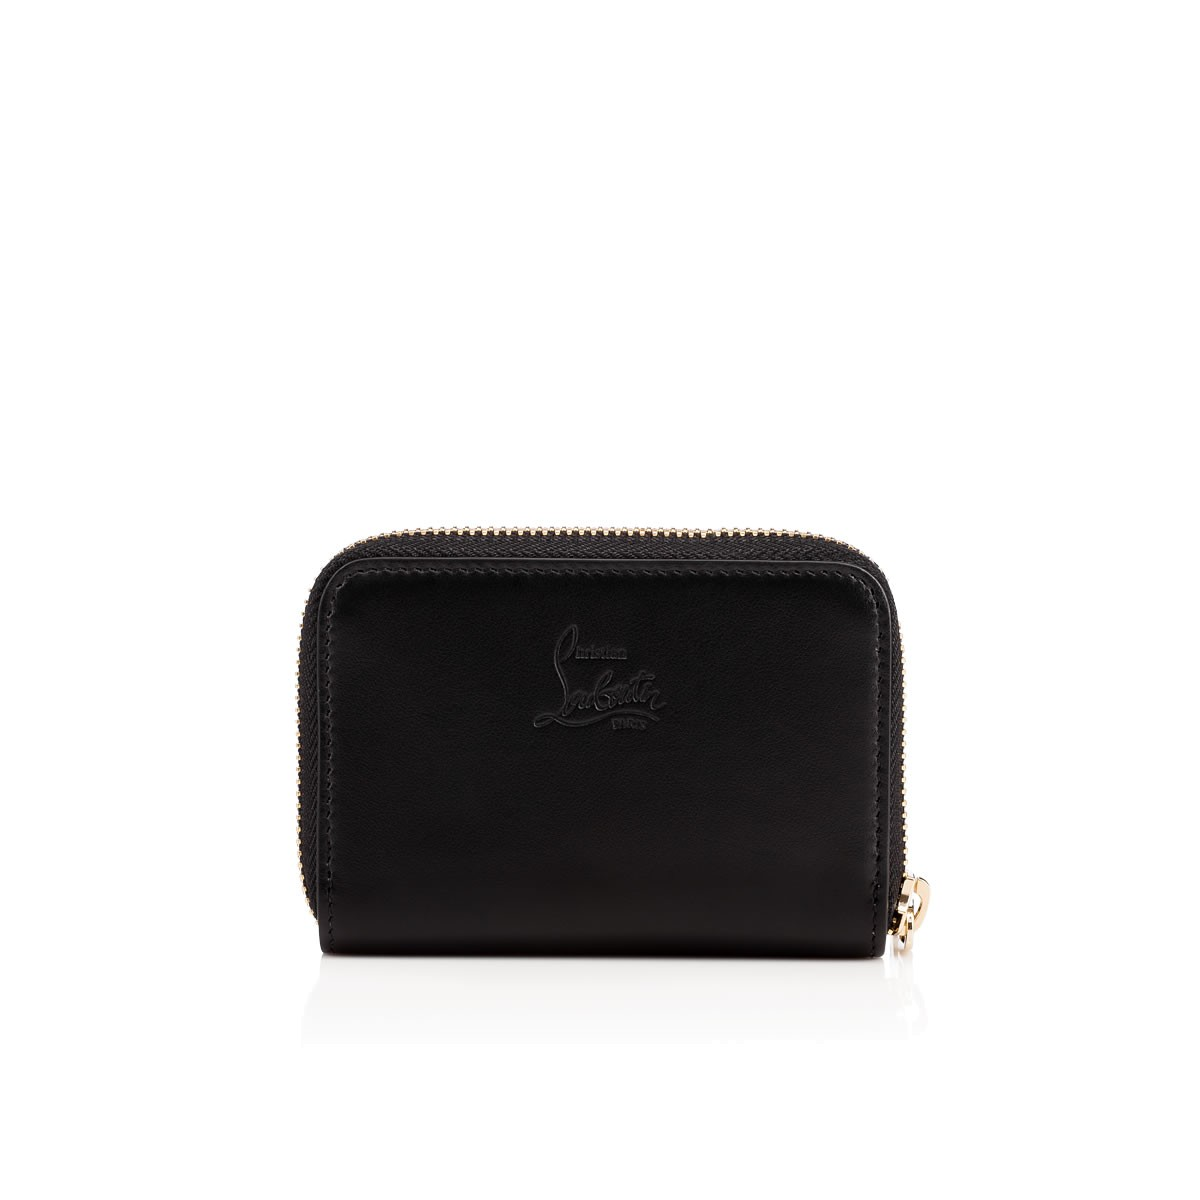 Small Leather Goods - Panettone Coin Purse - Christian Louboutin